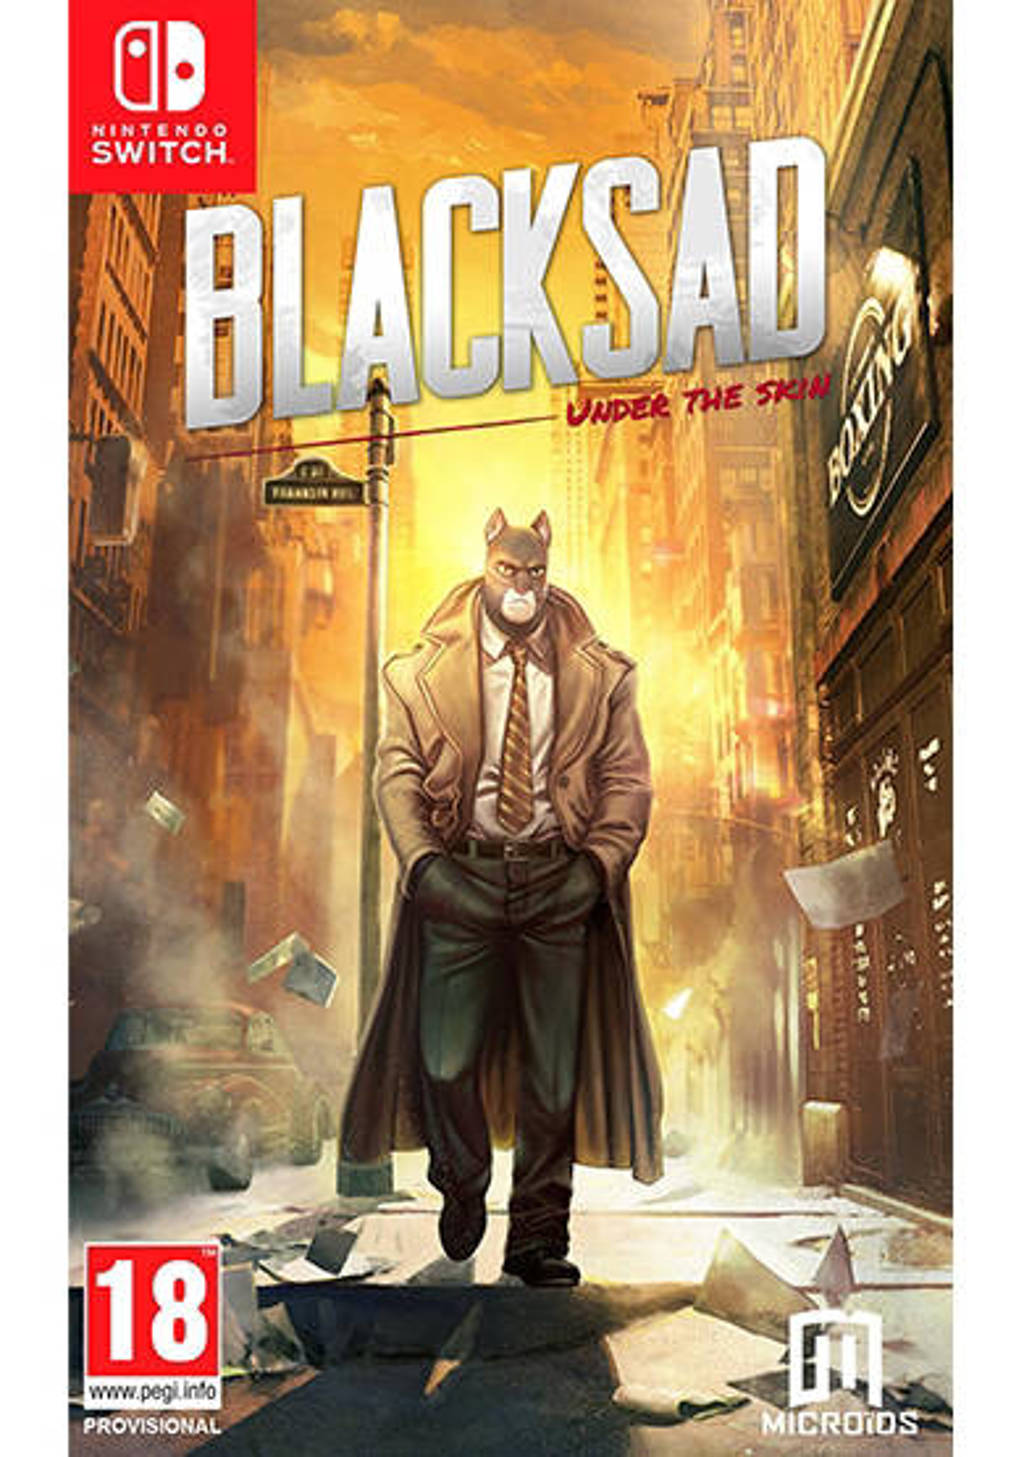 Blacksad - Under the skin (Limited edition) (Nintendo Switch)